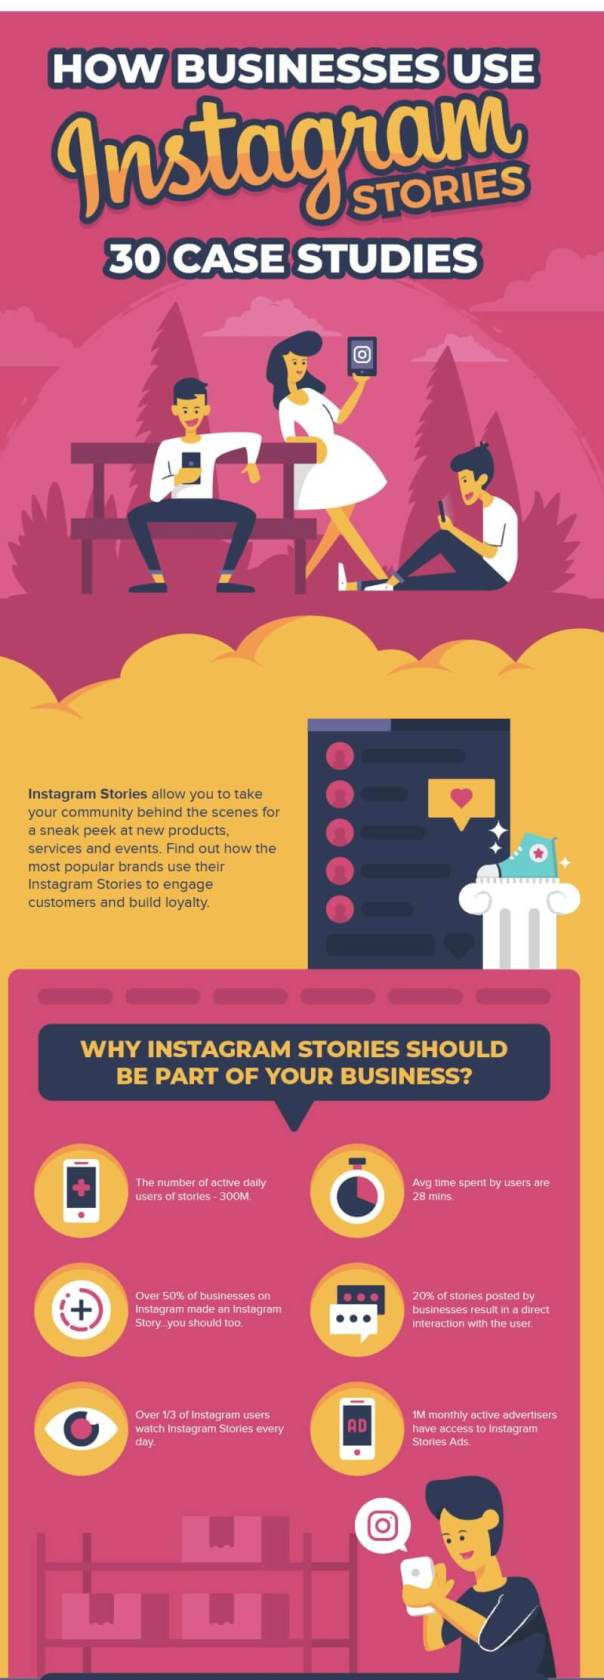 Best-Examples-of-How-Brands-Use-Instagram-Stories-Infographic_01